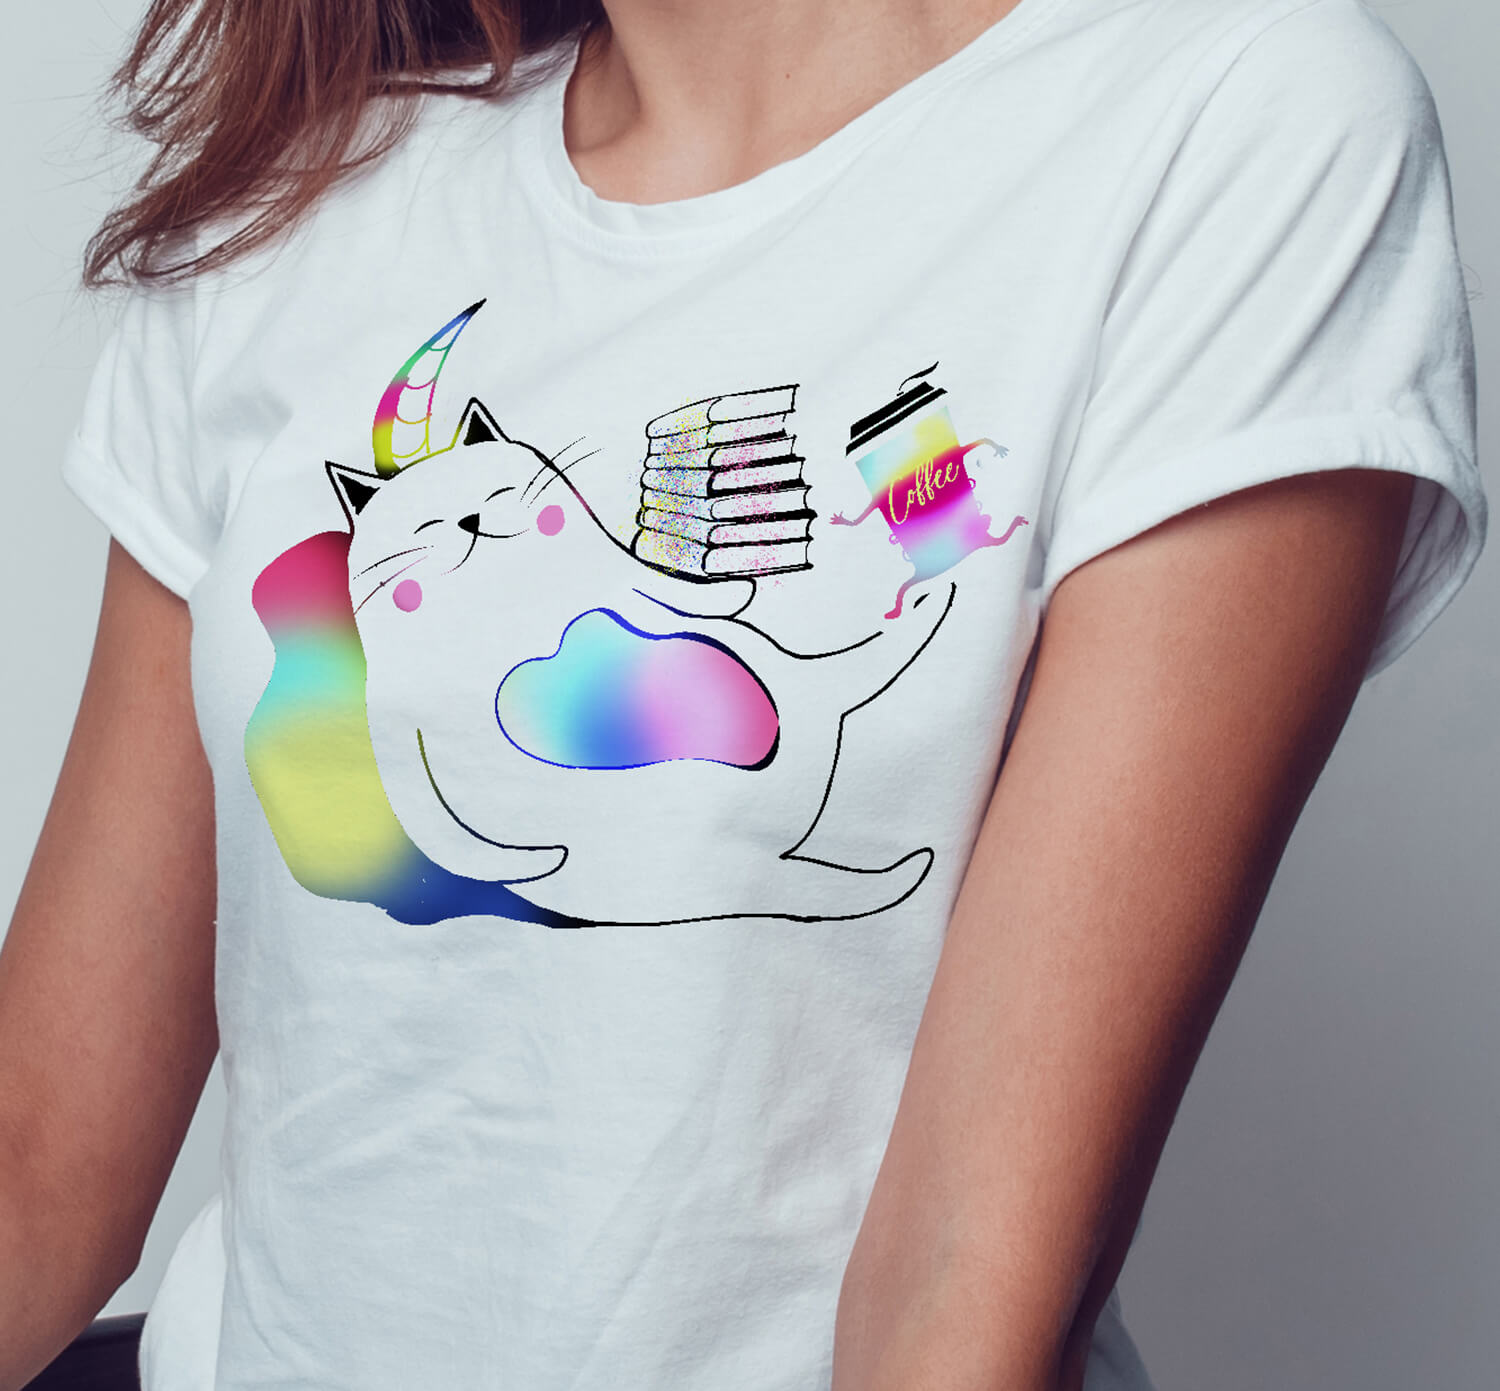 Meowgical Rainbow Caticorns, Books, and Coffee Shirt, Meowgical Caticorn, Meowgical Cat gift, Meowgical kids, Meowgical girls, Meowgical, Coffee shirt, Bookworm cat, cat,